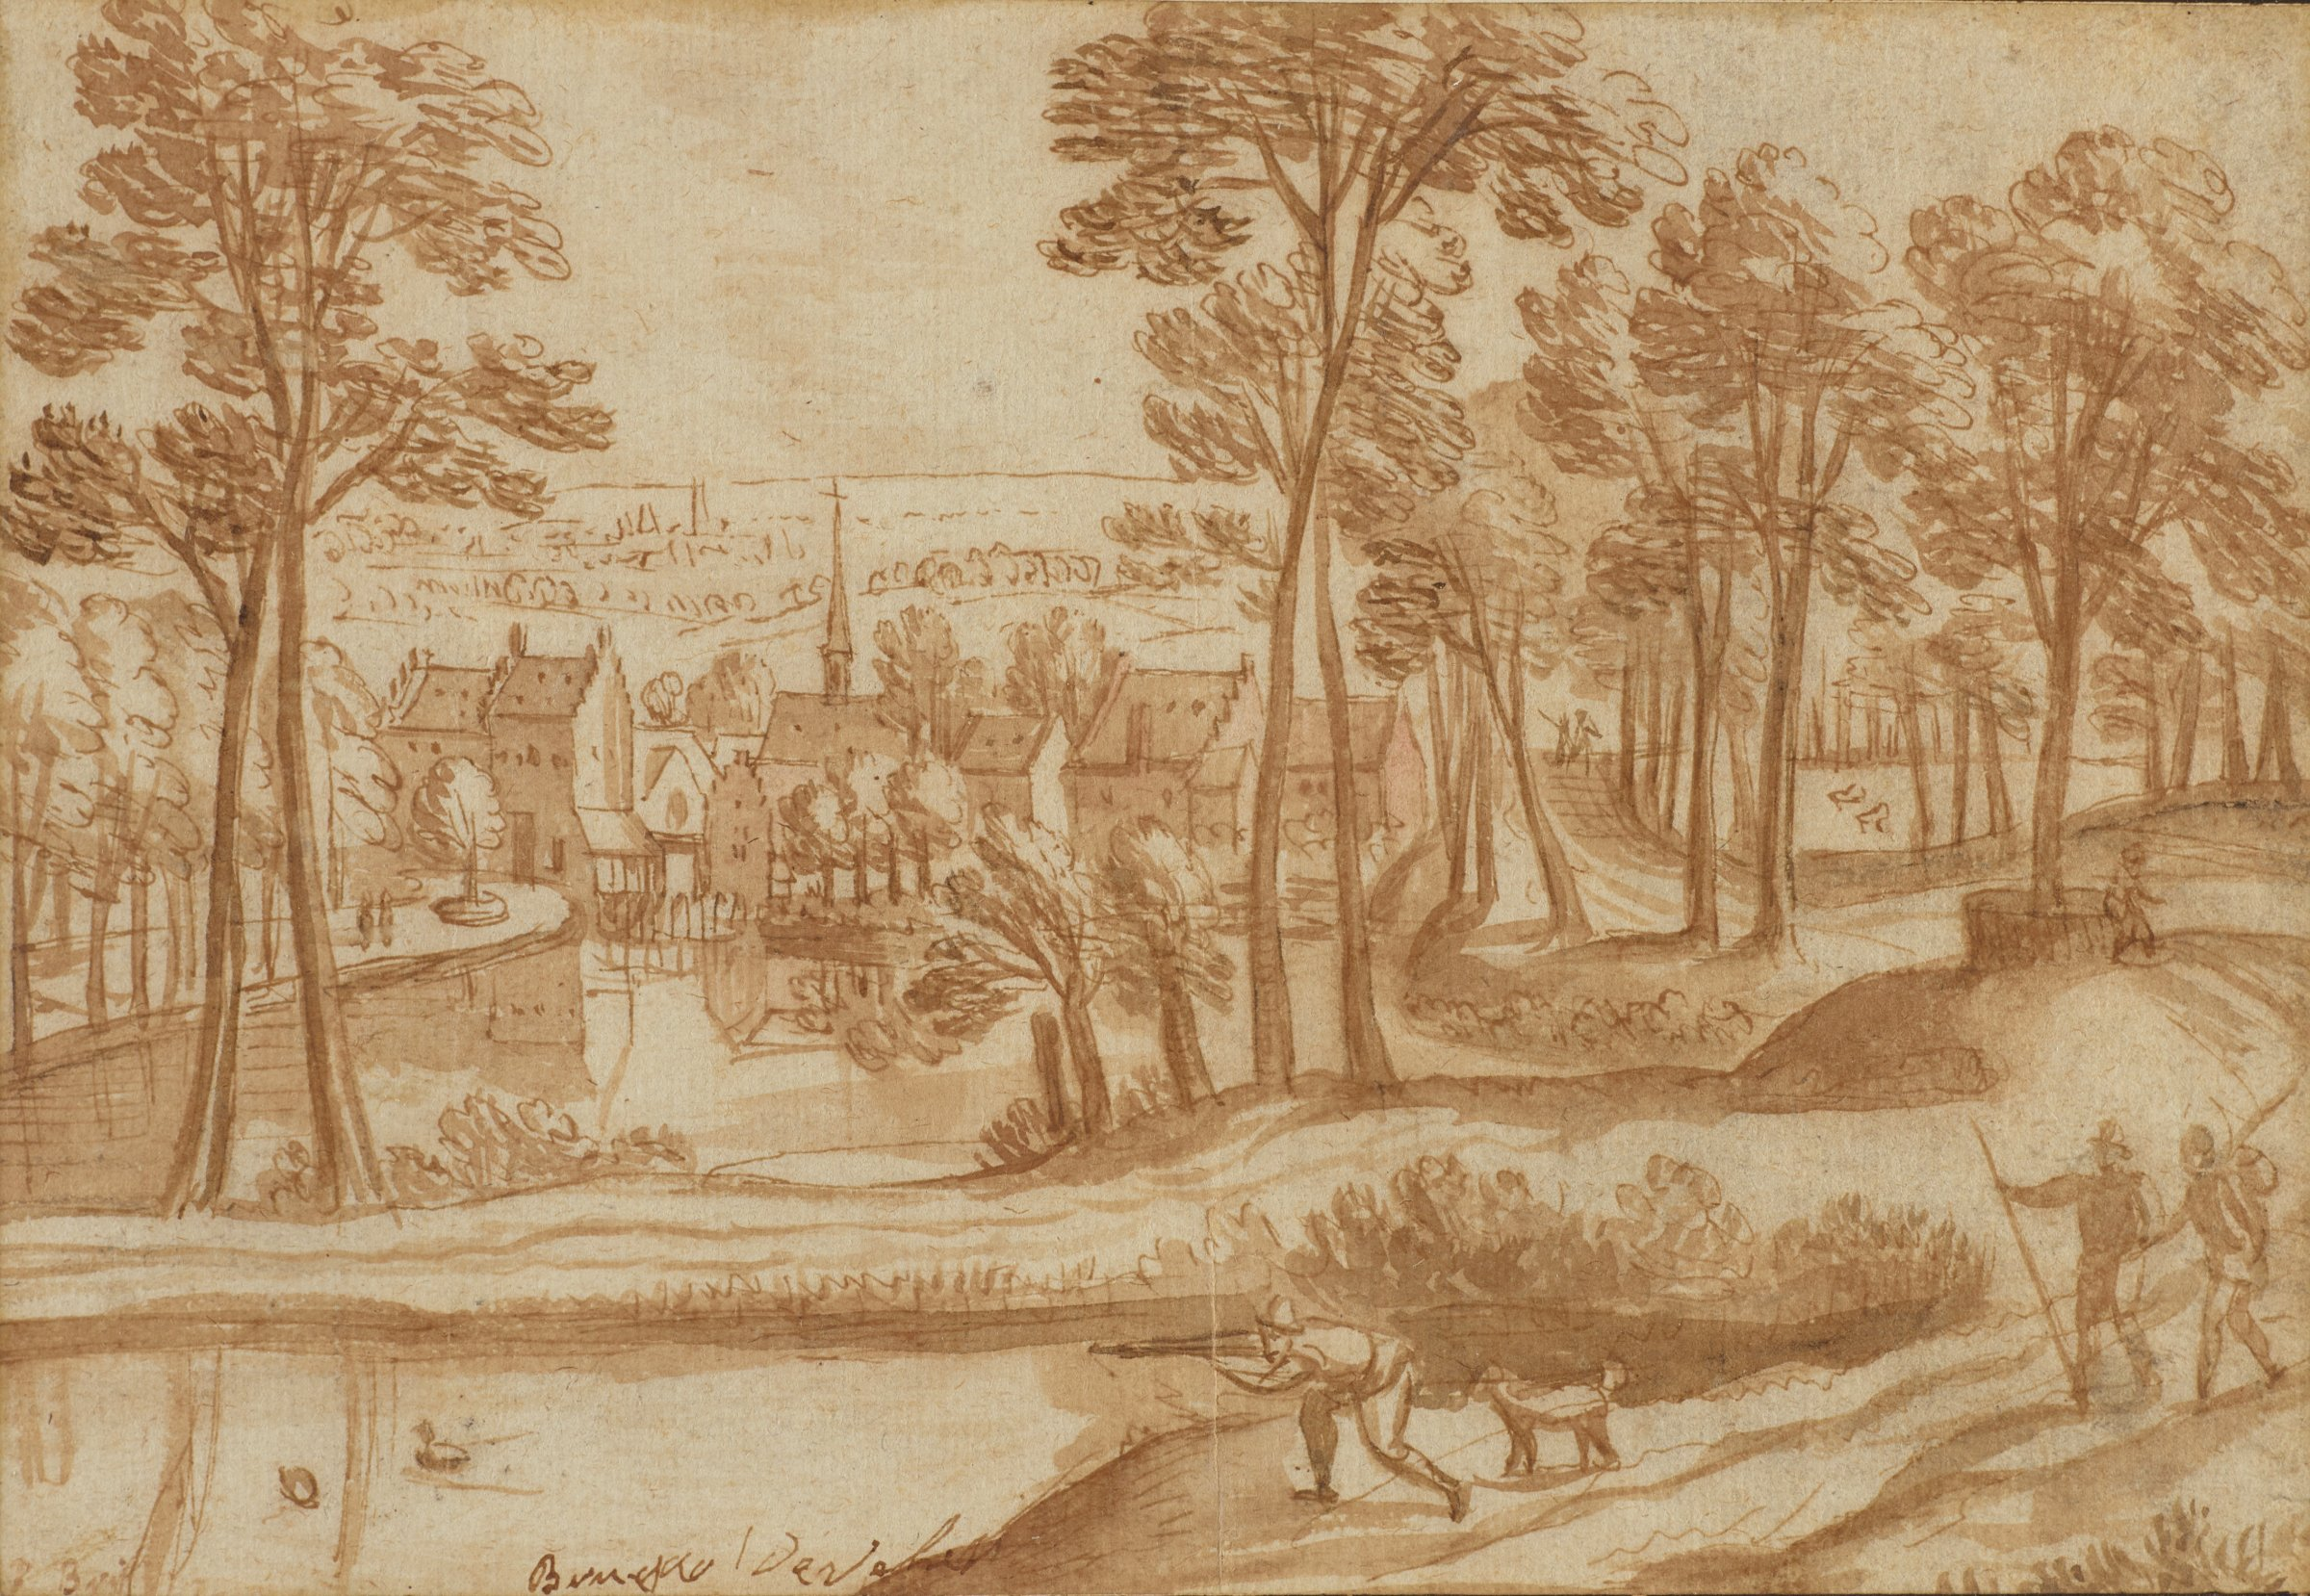 In the foreground is a wooded area with several figures engaged in activity. Beyond the woods is a village with a steepled church in the center.